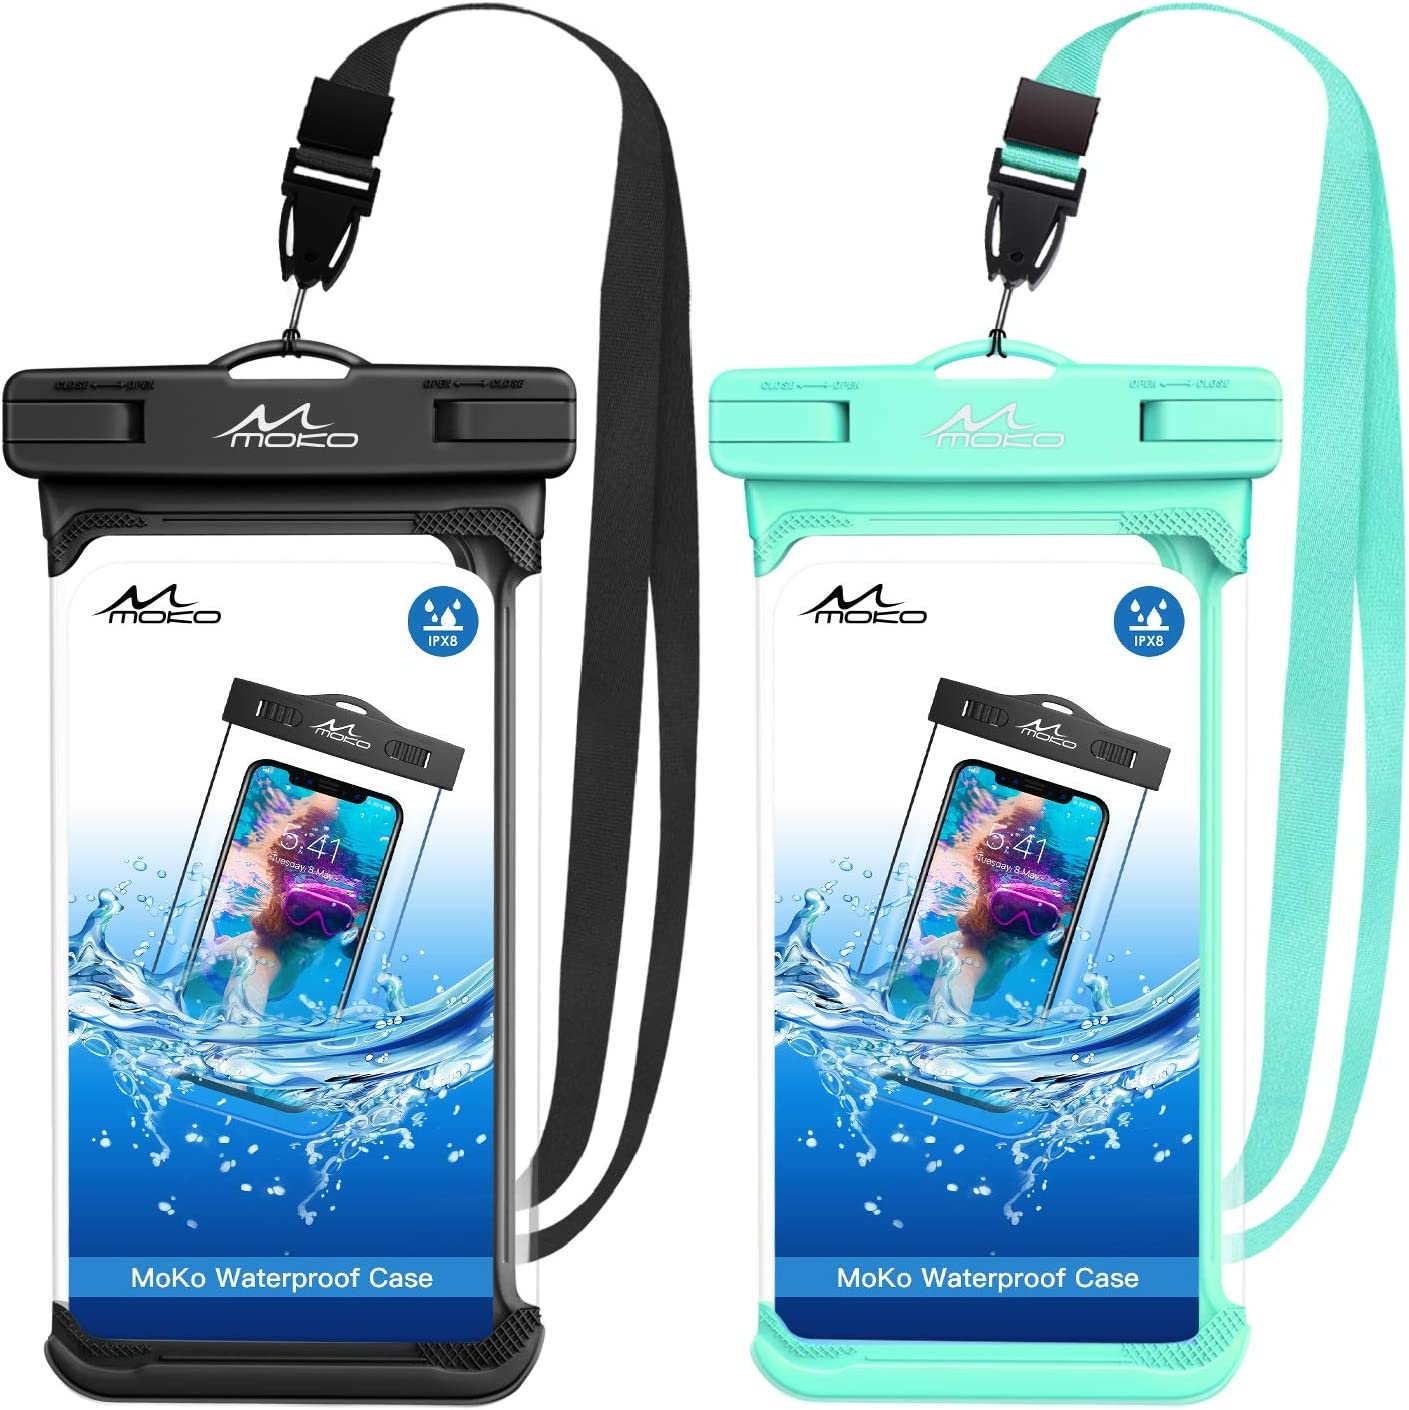 MoKo Waterproof Phone Pouch Holder [2 Pack], Underwater Phone Case Dry Bag with Lanyard Compatible with iPhone 13/13 Pro Max/iPhone 12/12 Pro Max/11 Pro Max, X/Xr/Xs Max, Samsung S20/S21/S10/S9